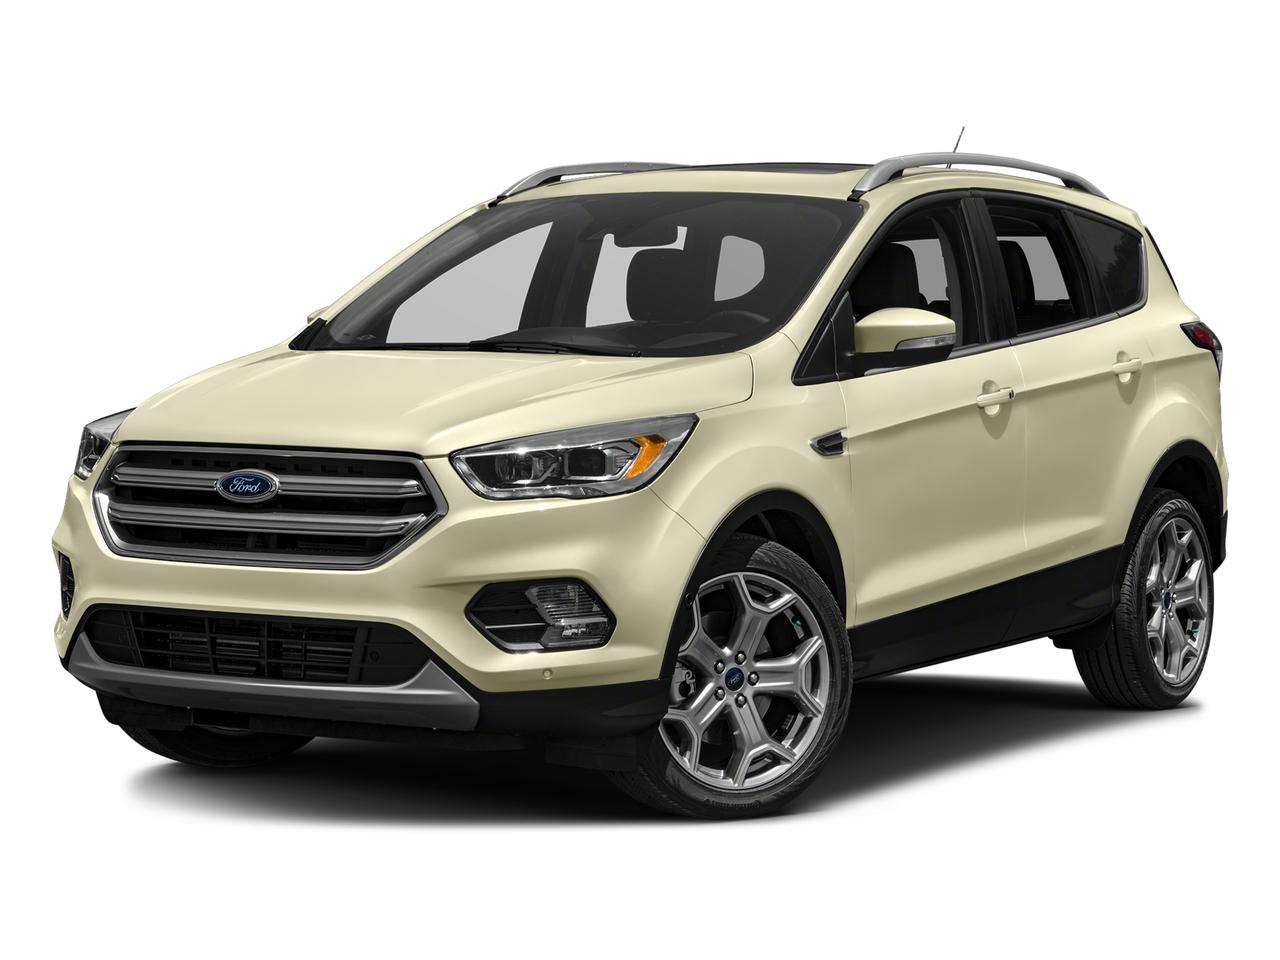 2017 Ford Escape Vehicle Photo in MEDINA, OH 44256-9631